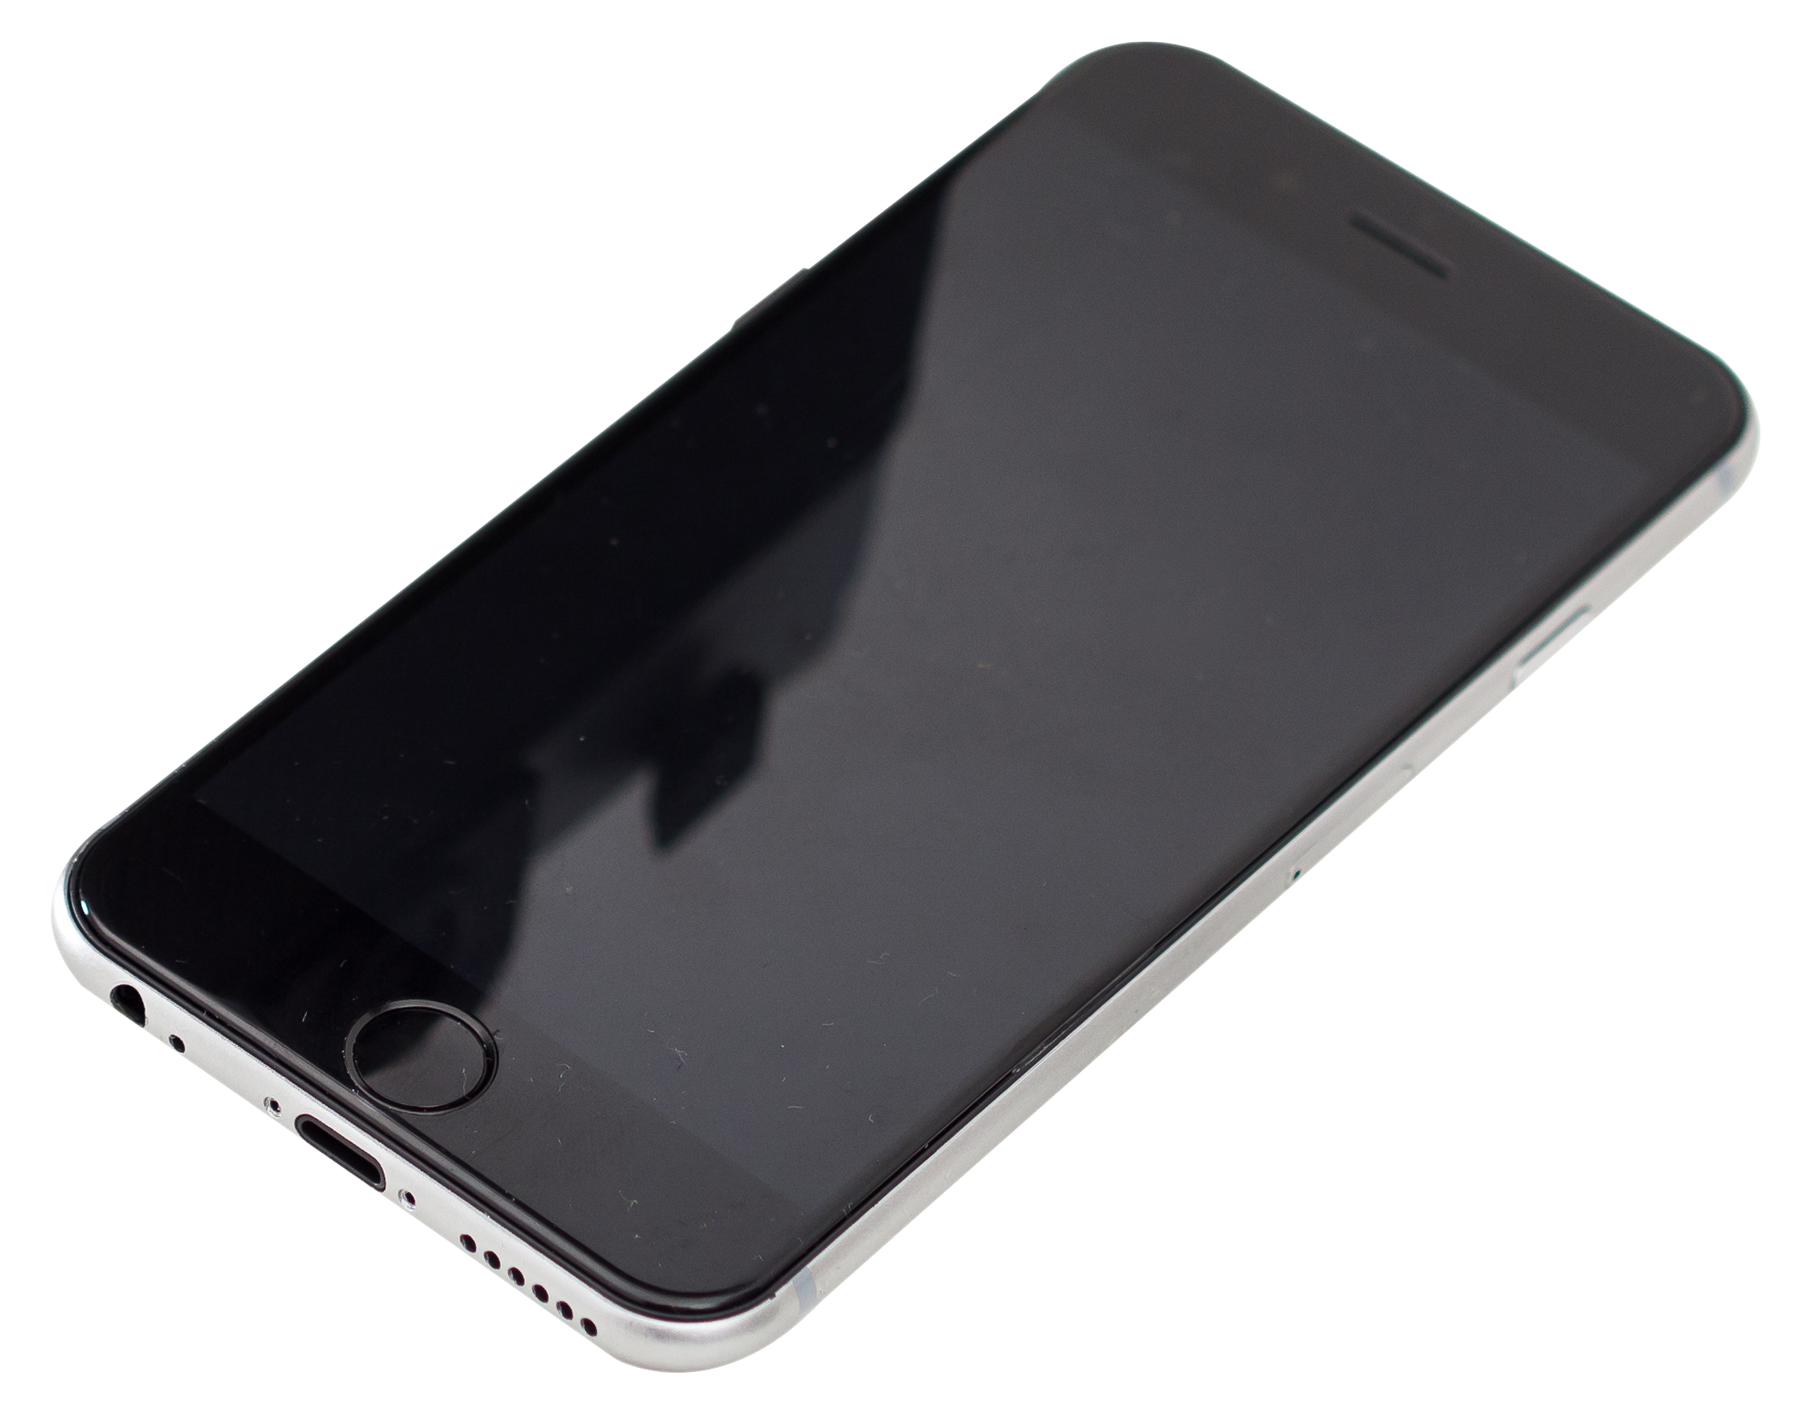 iPhone Top View PNG Image